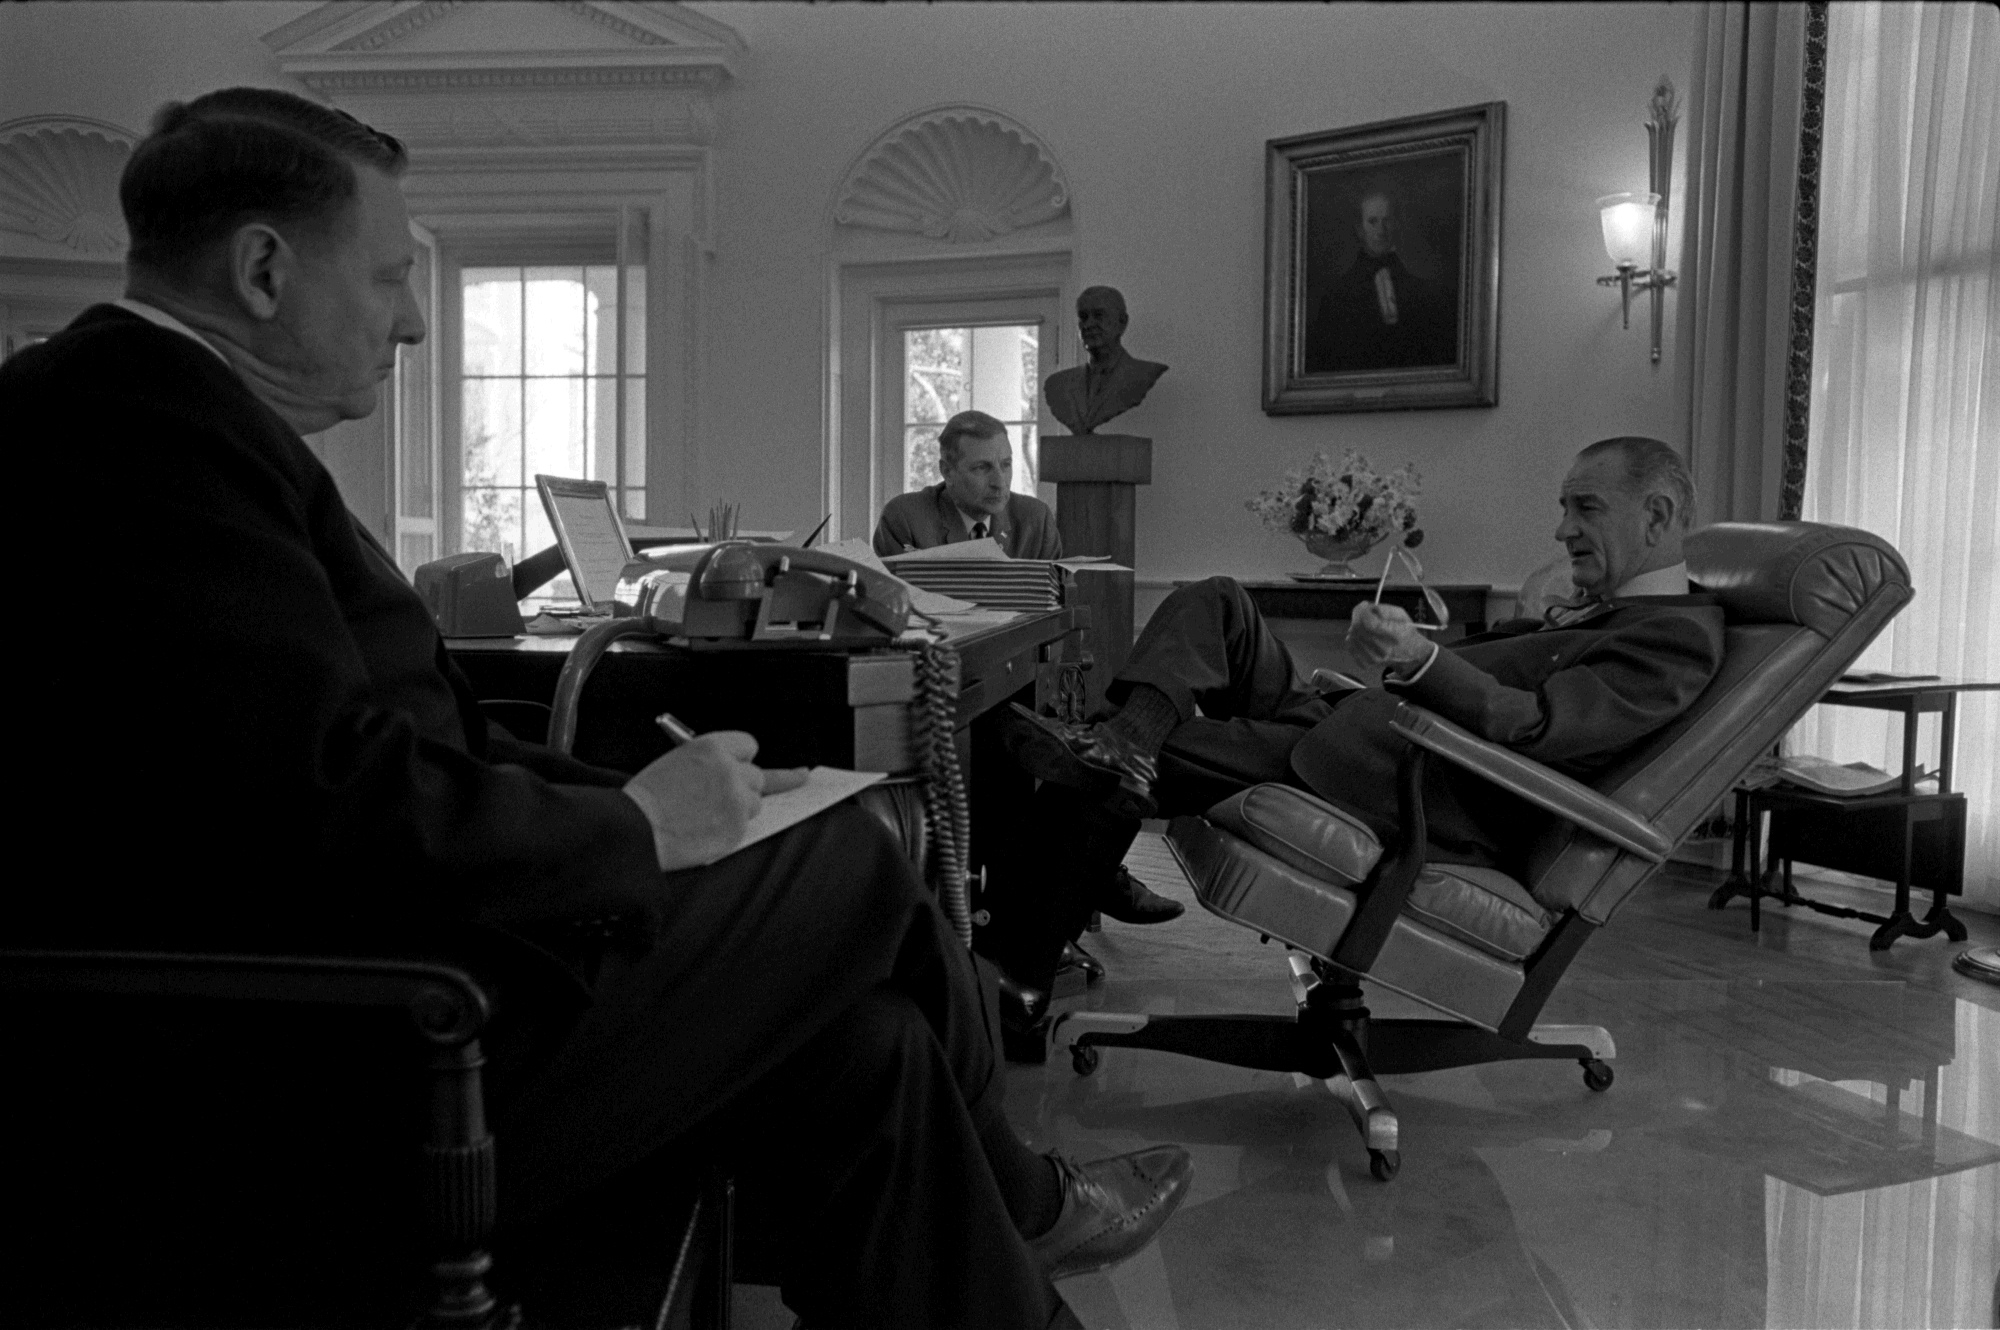 lbj oval office. File:Oval Office LBJ 2.jpg Lbj Oval P